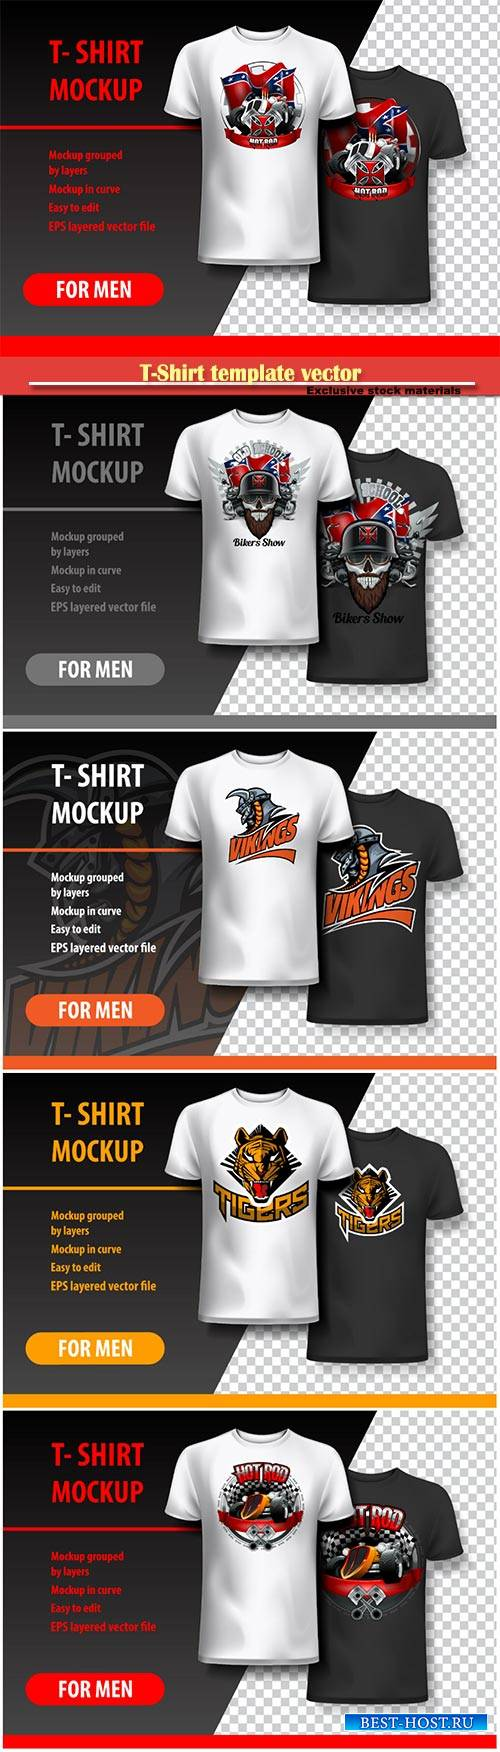 T-Shirt template vector